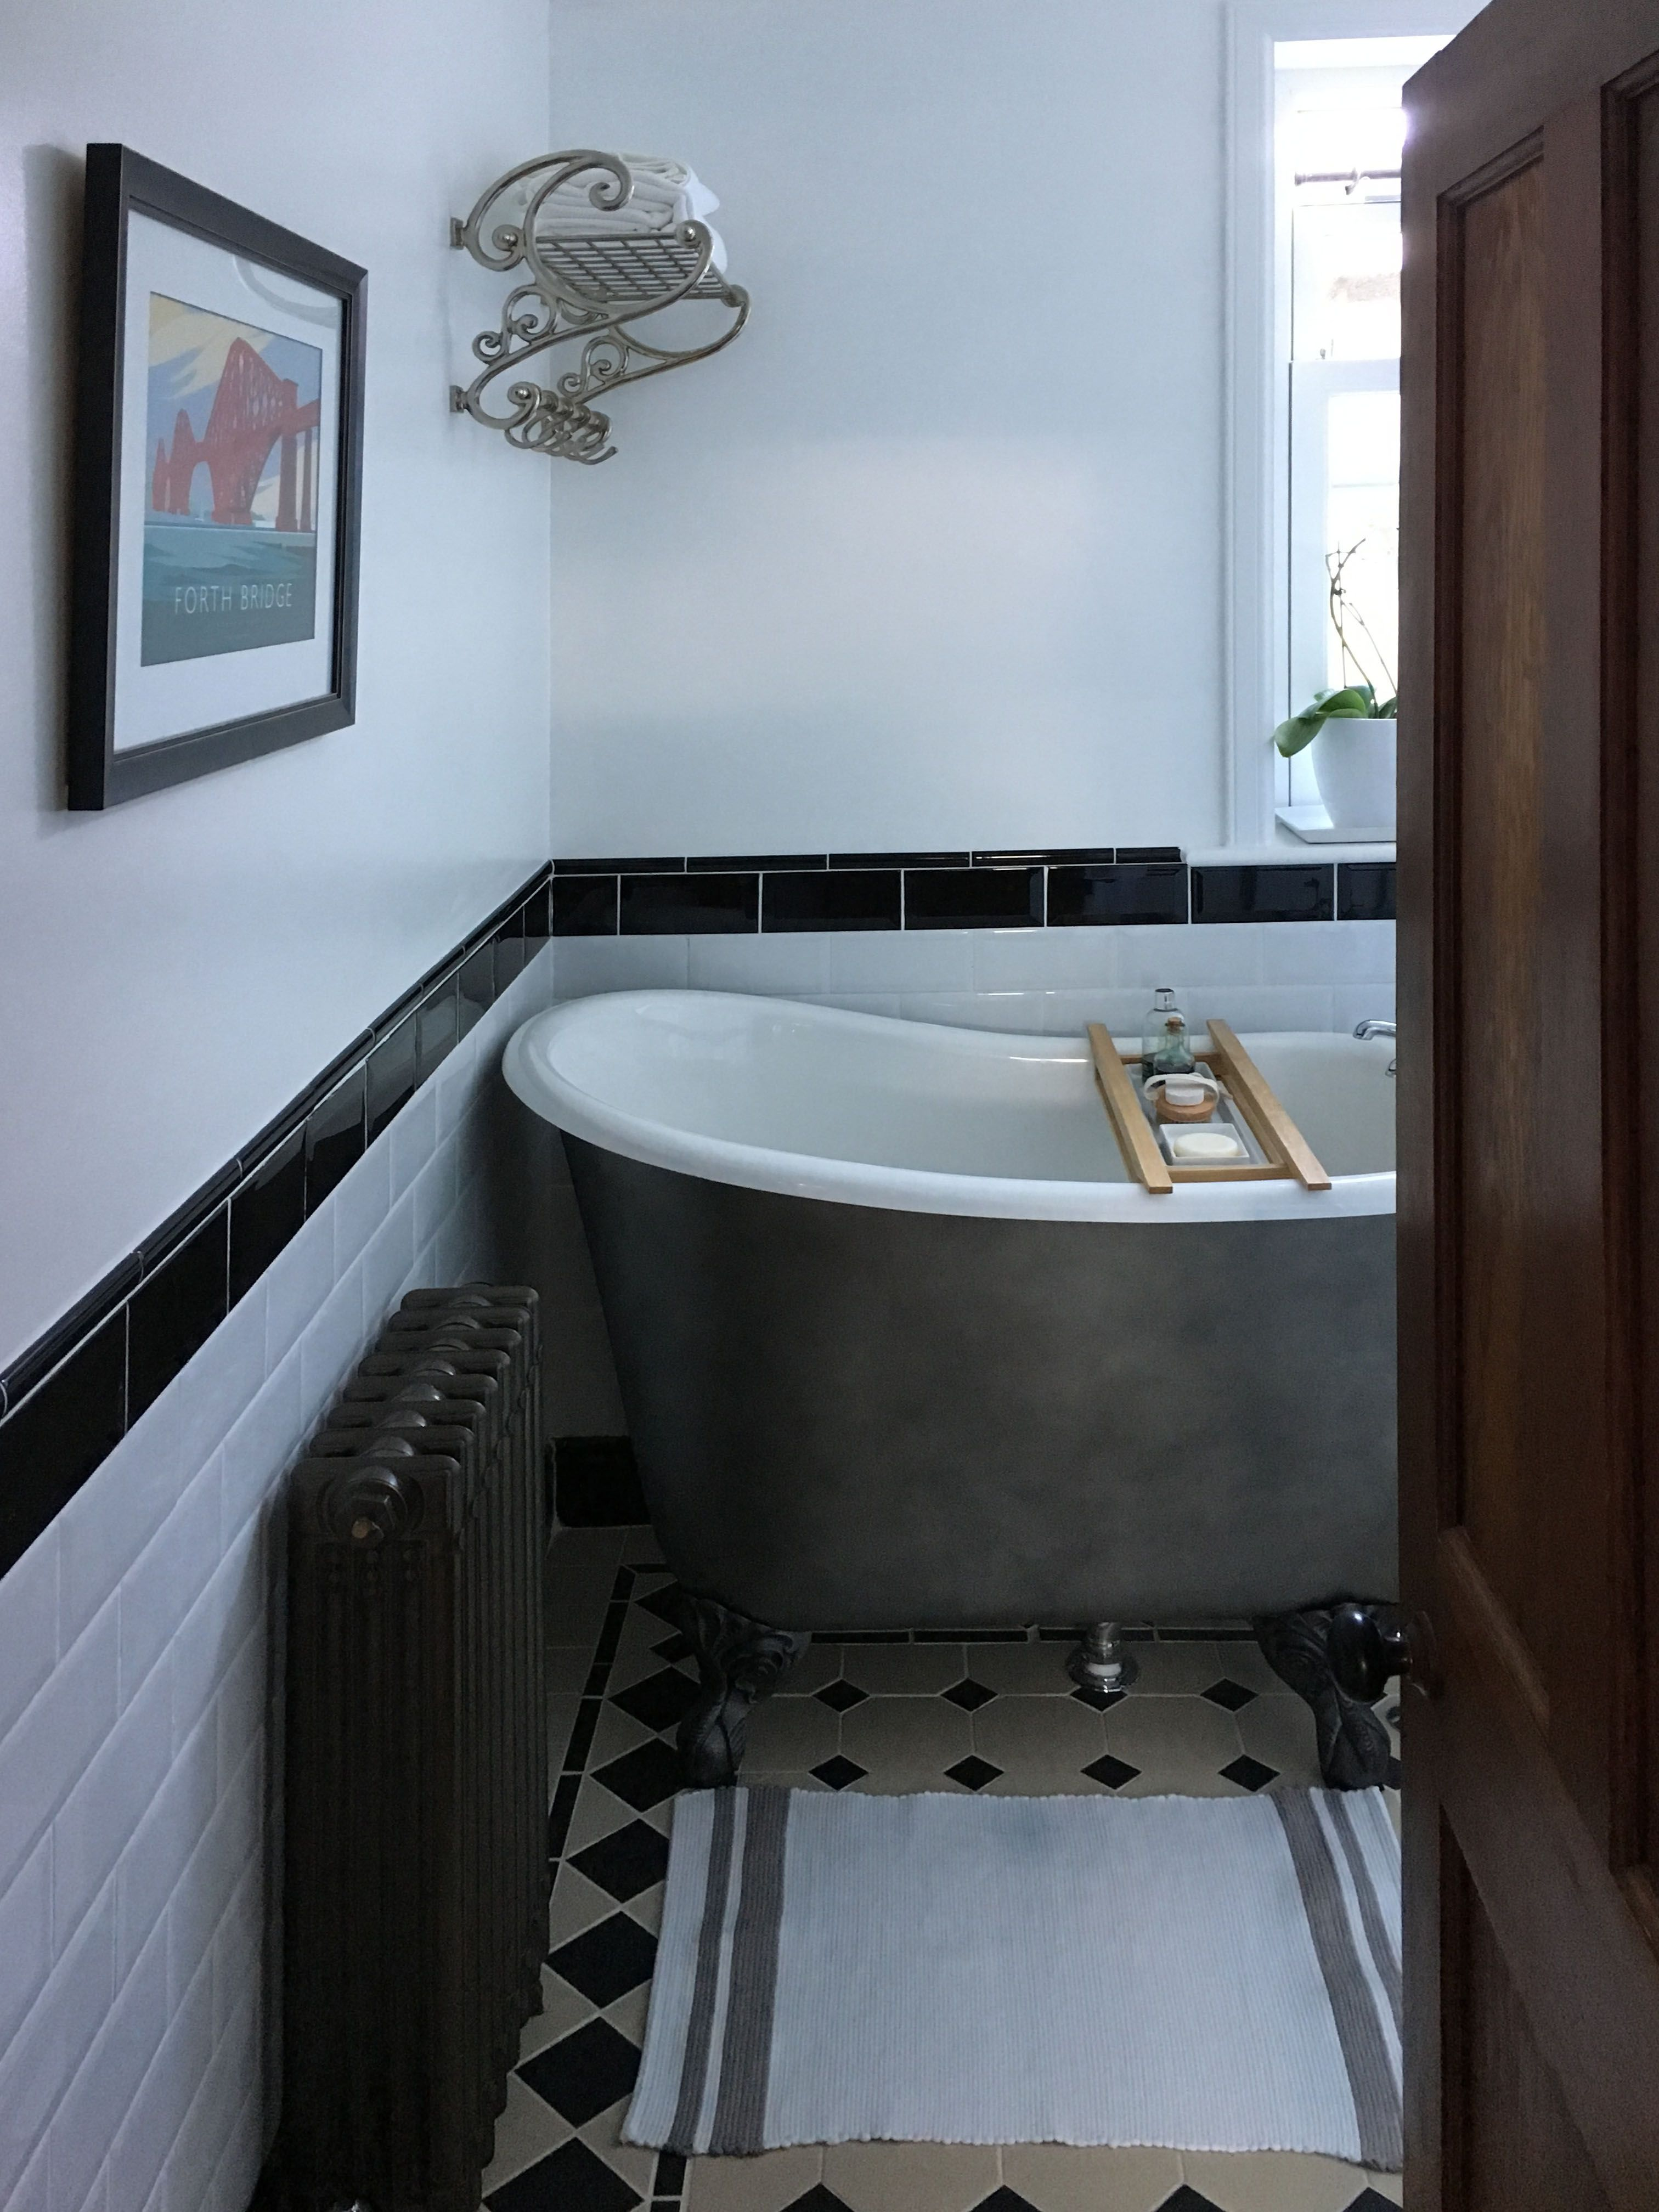 A sneak peak at our Tubby Tub installed for ultimate luxury. Thanks ...